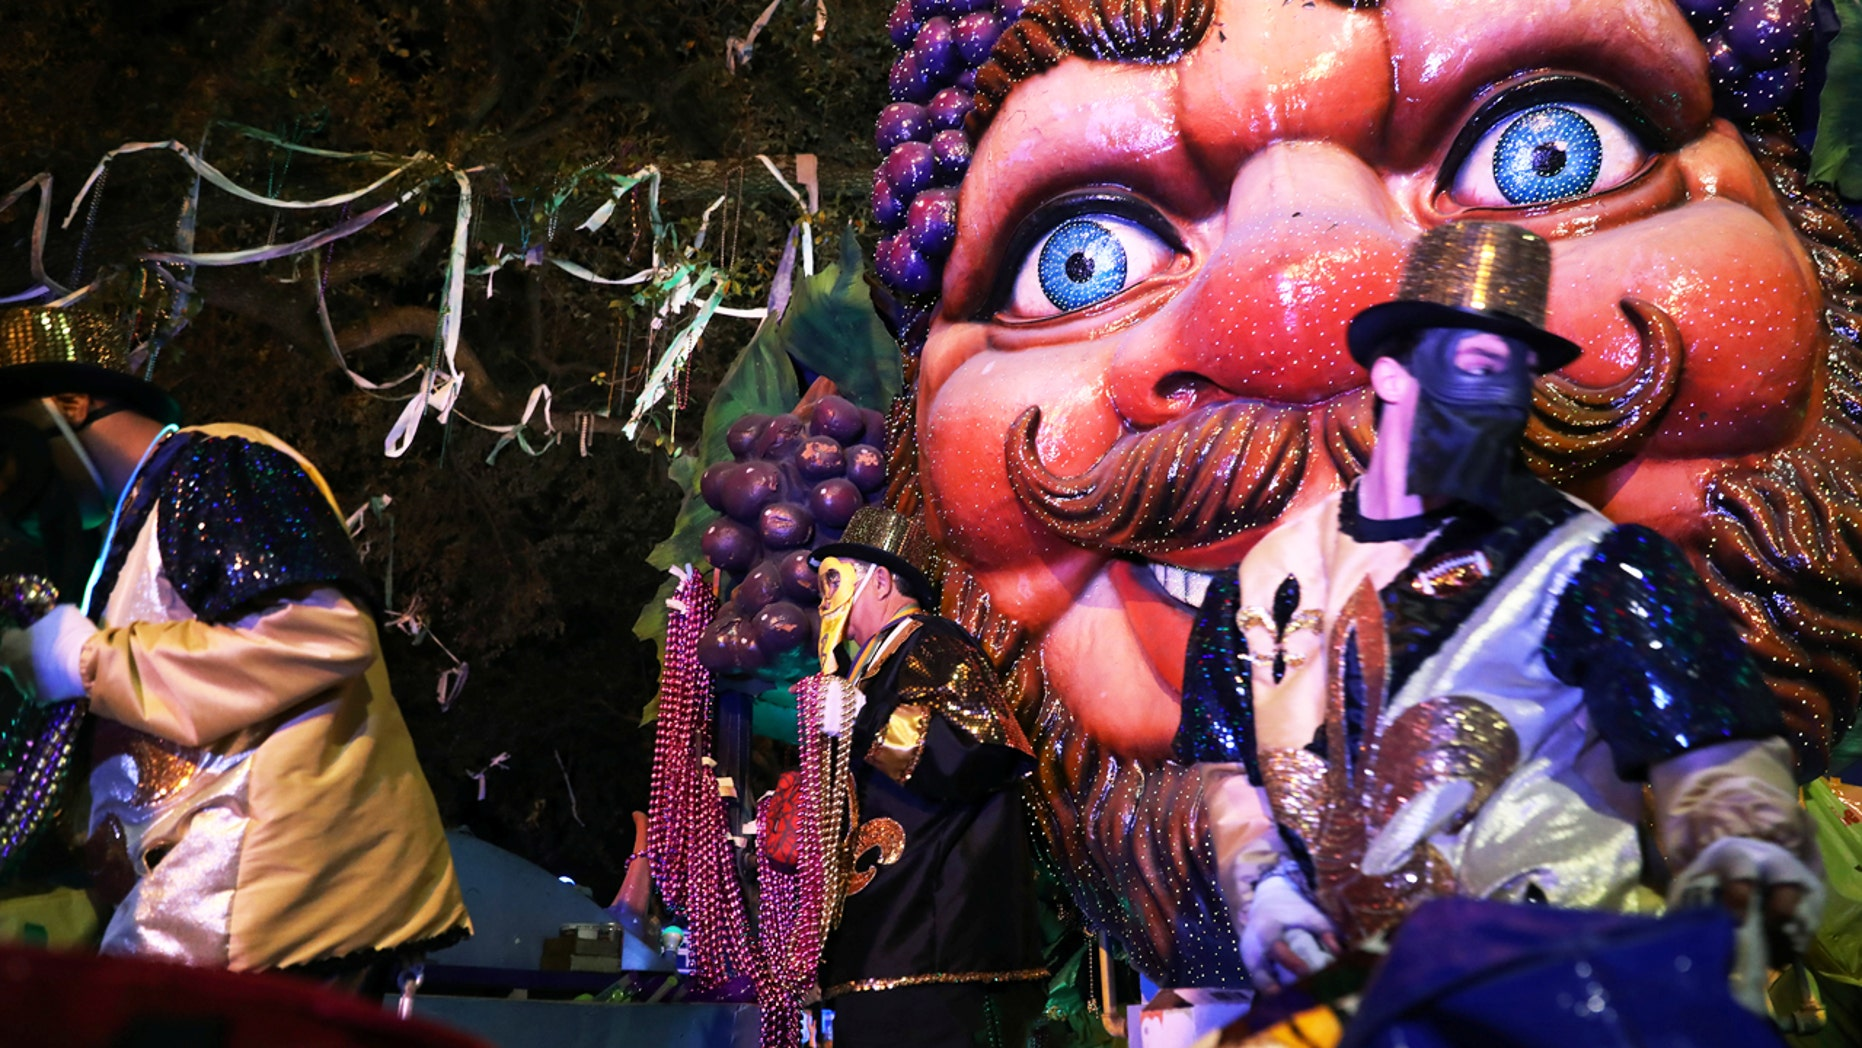 Float riders throw beads at the Bacchus parade during Mardi Gras in New Orleans, Feb. 26, 2017.